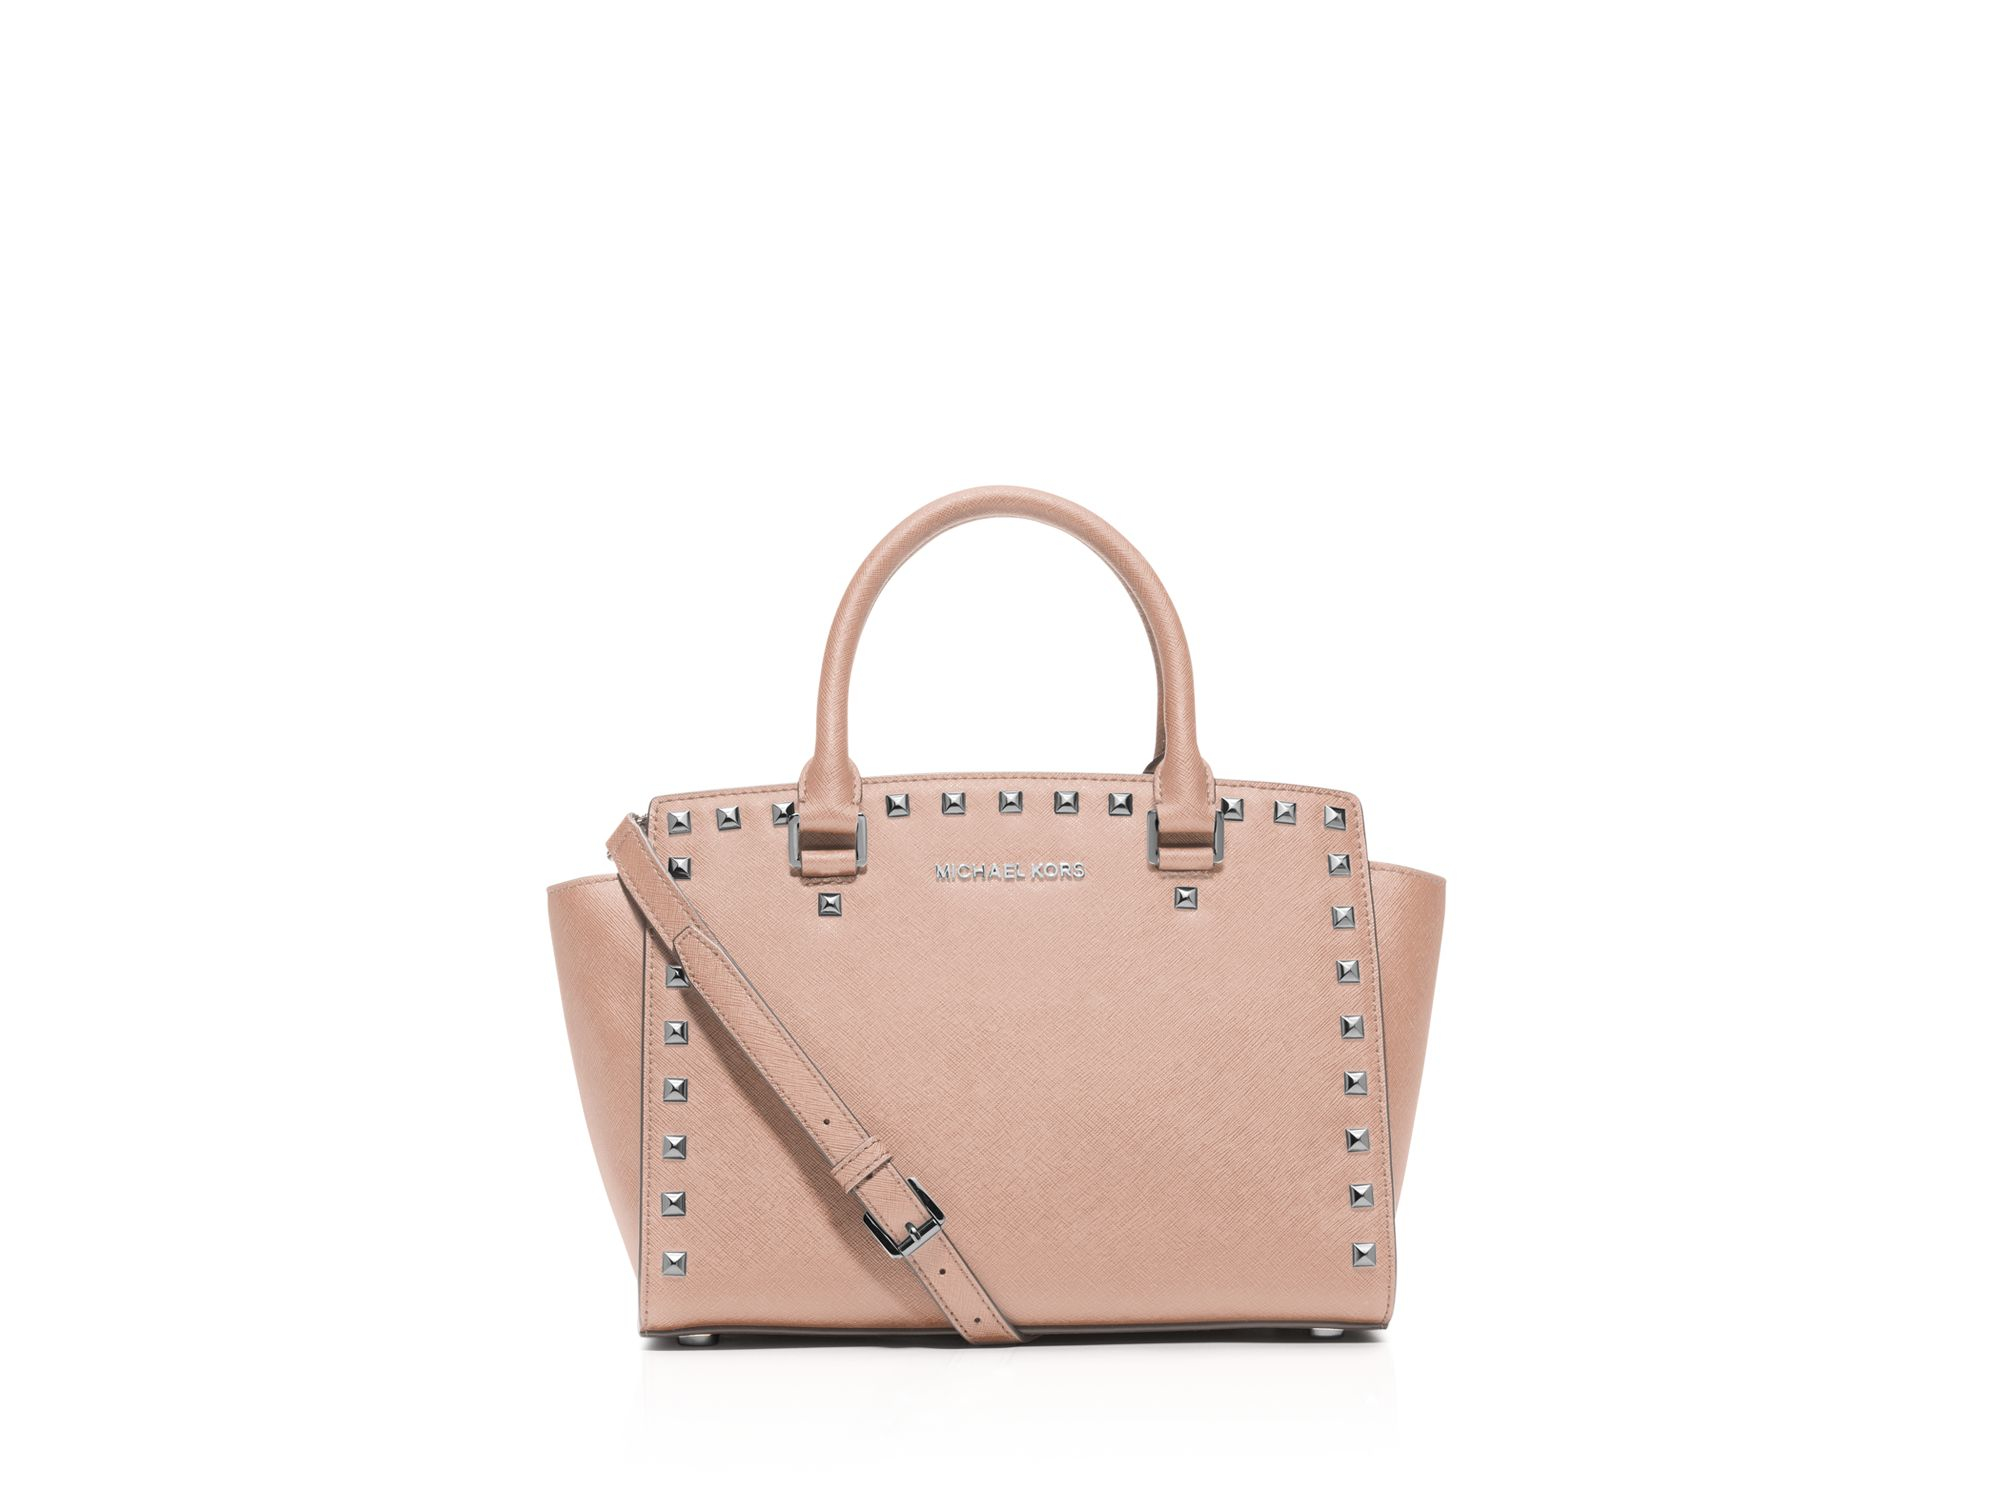 367090bddb28 Gallery. Previously sold at: Bloomingdale's · Women's Michael By Michael  Kors Selma